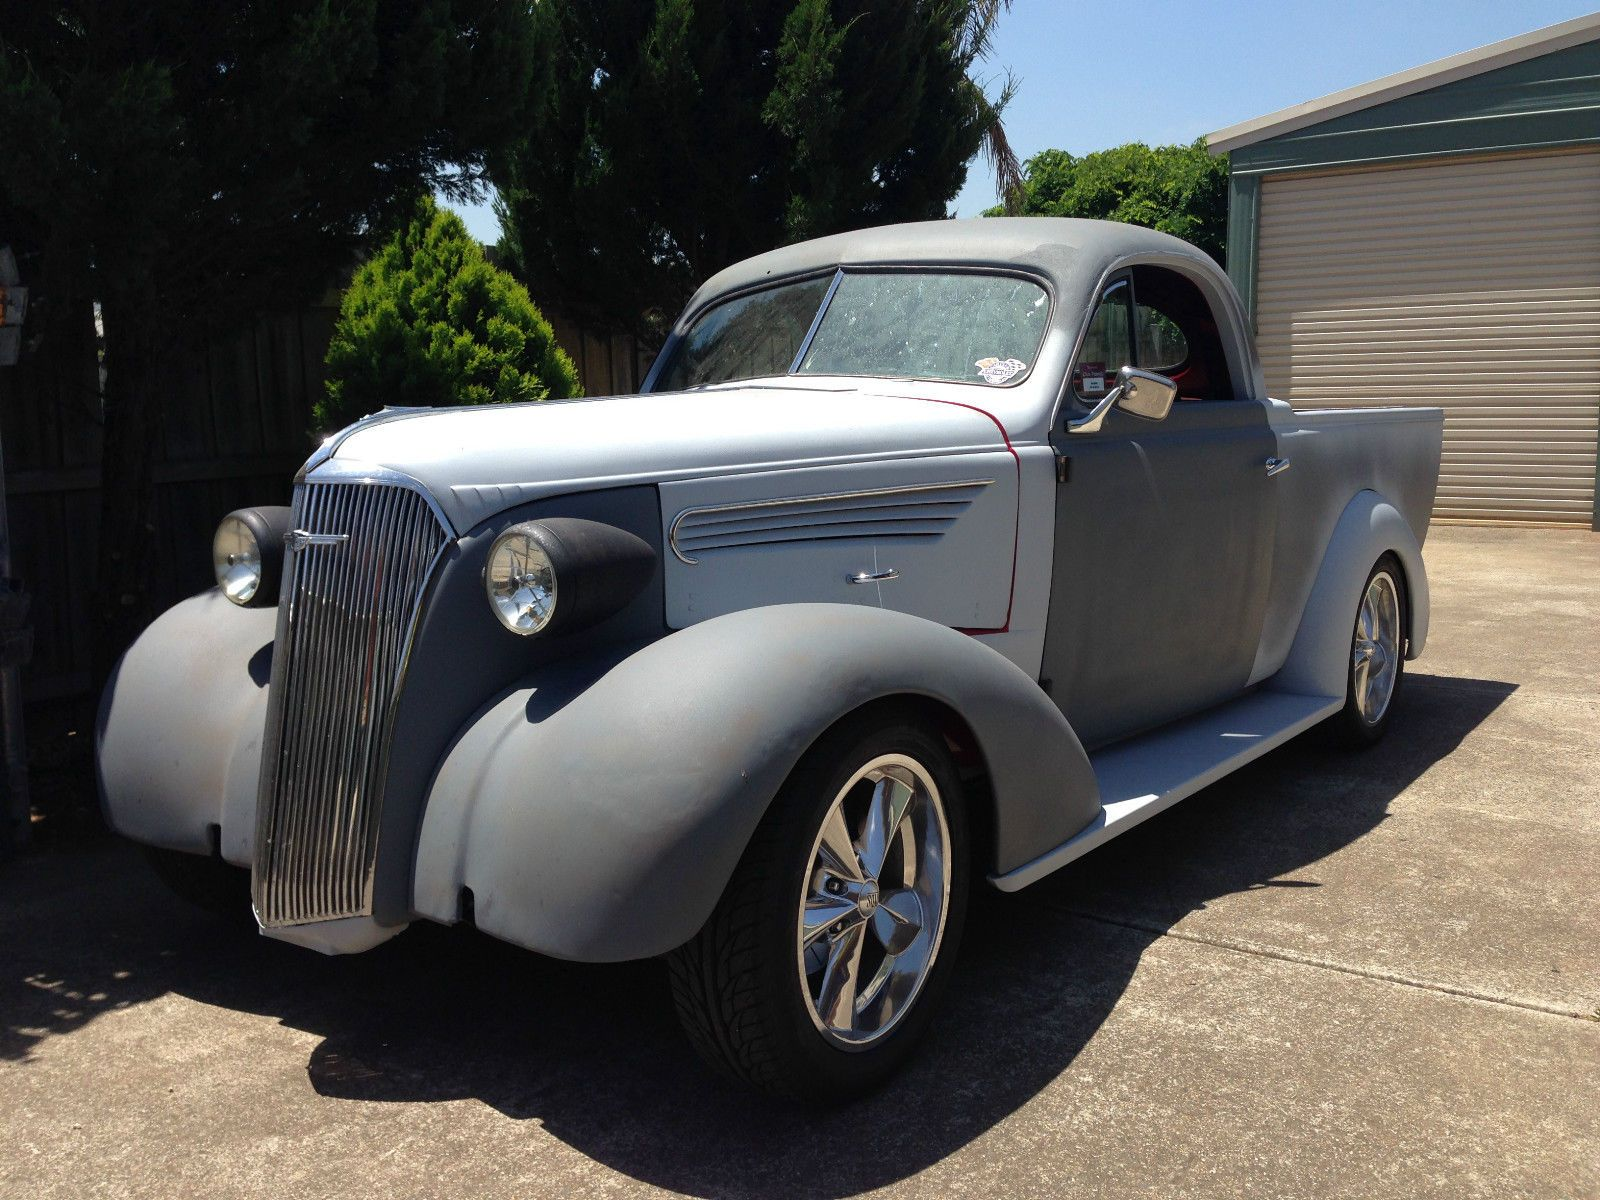 1937 Chevrolet Master Coupe Ute Holdens Body This Is Fitted With